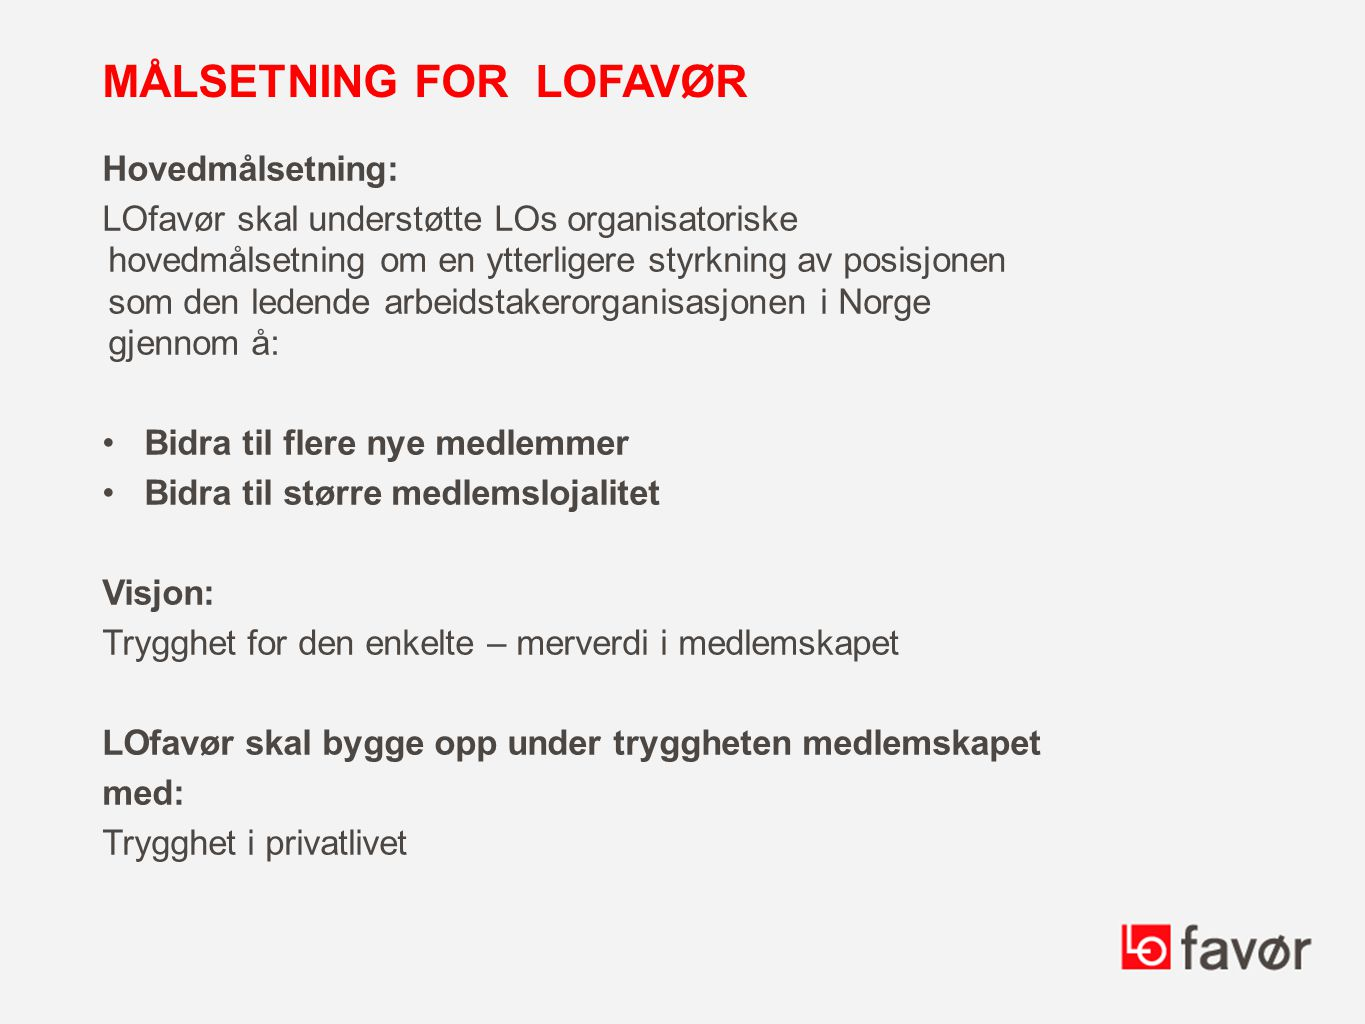 Målsetning for LOfavør